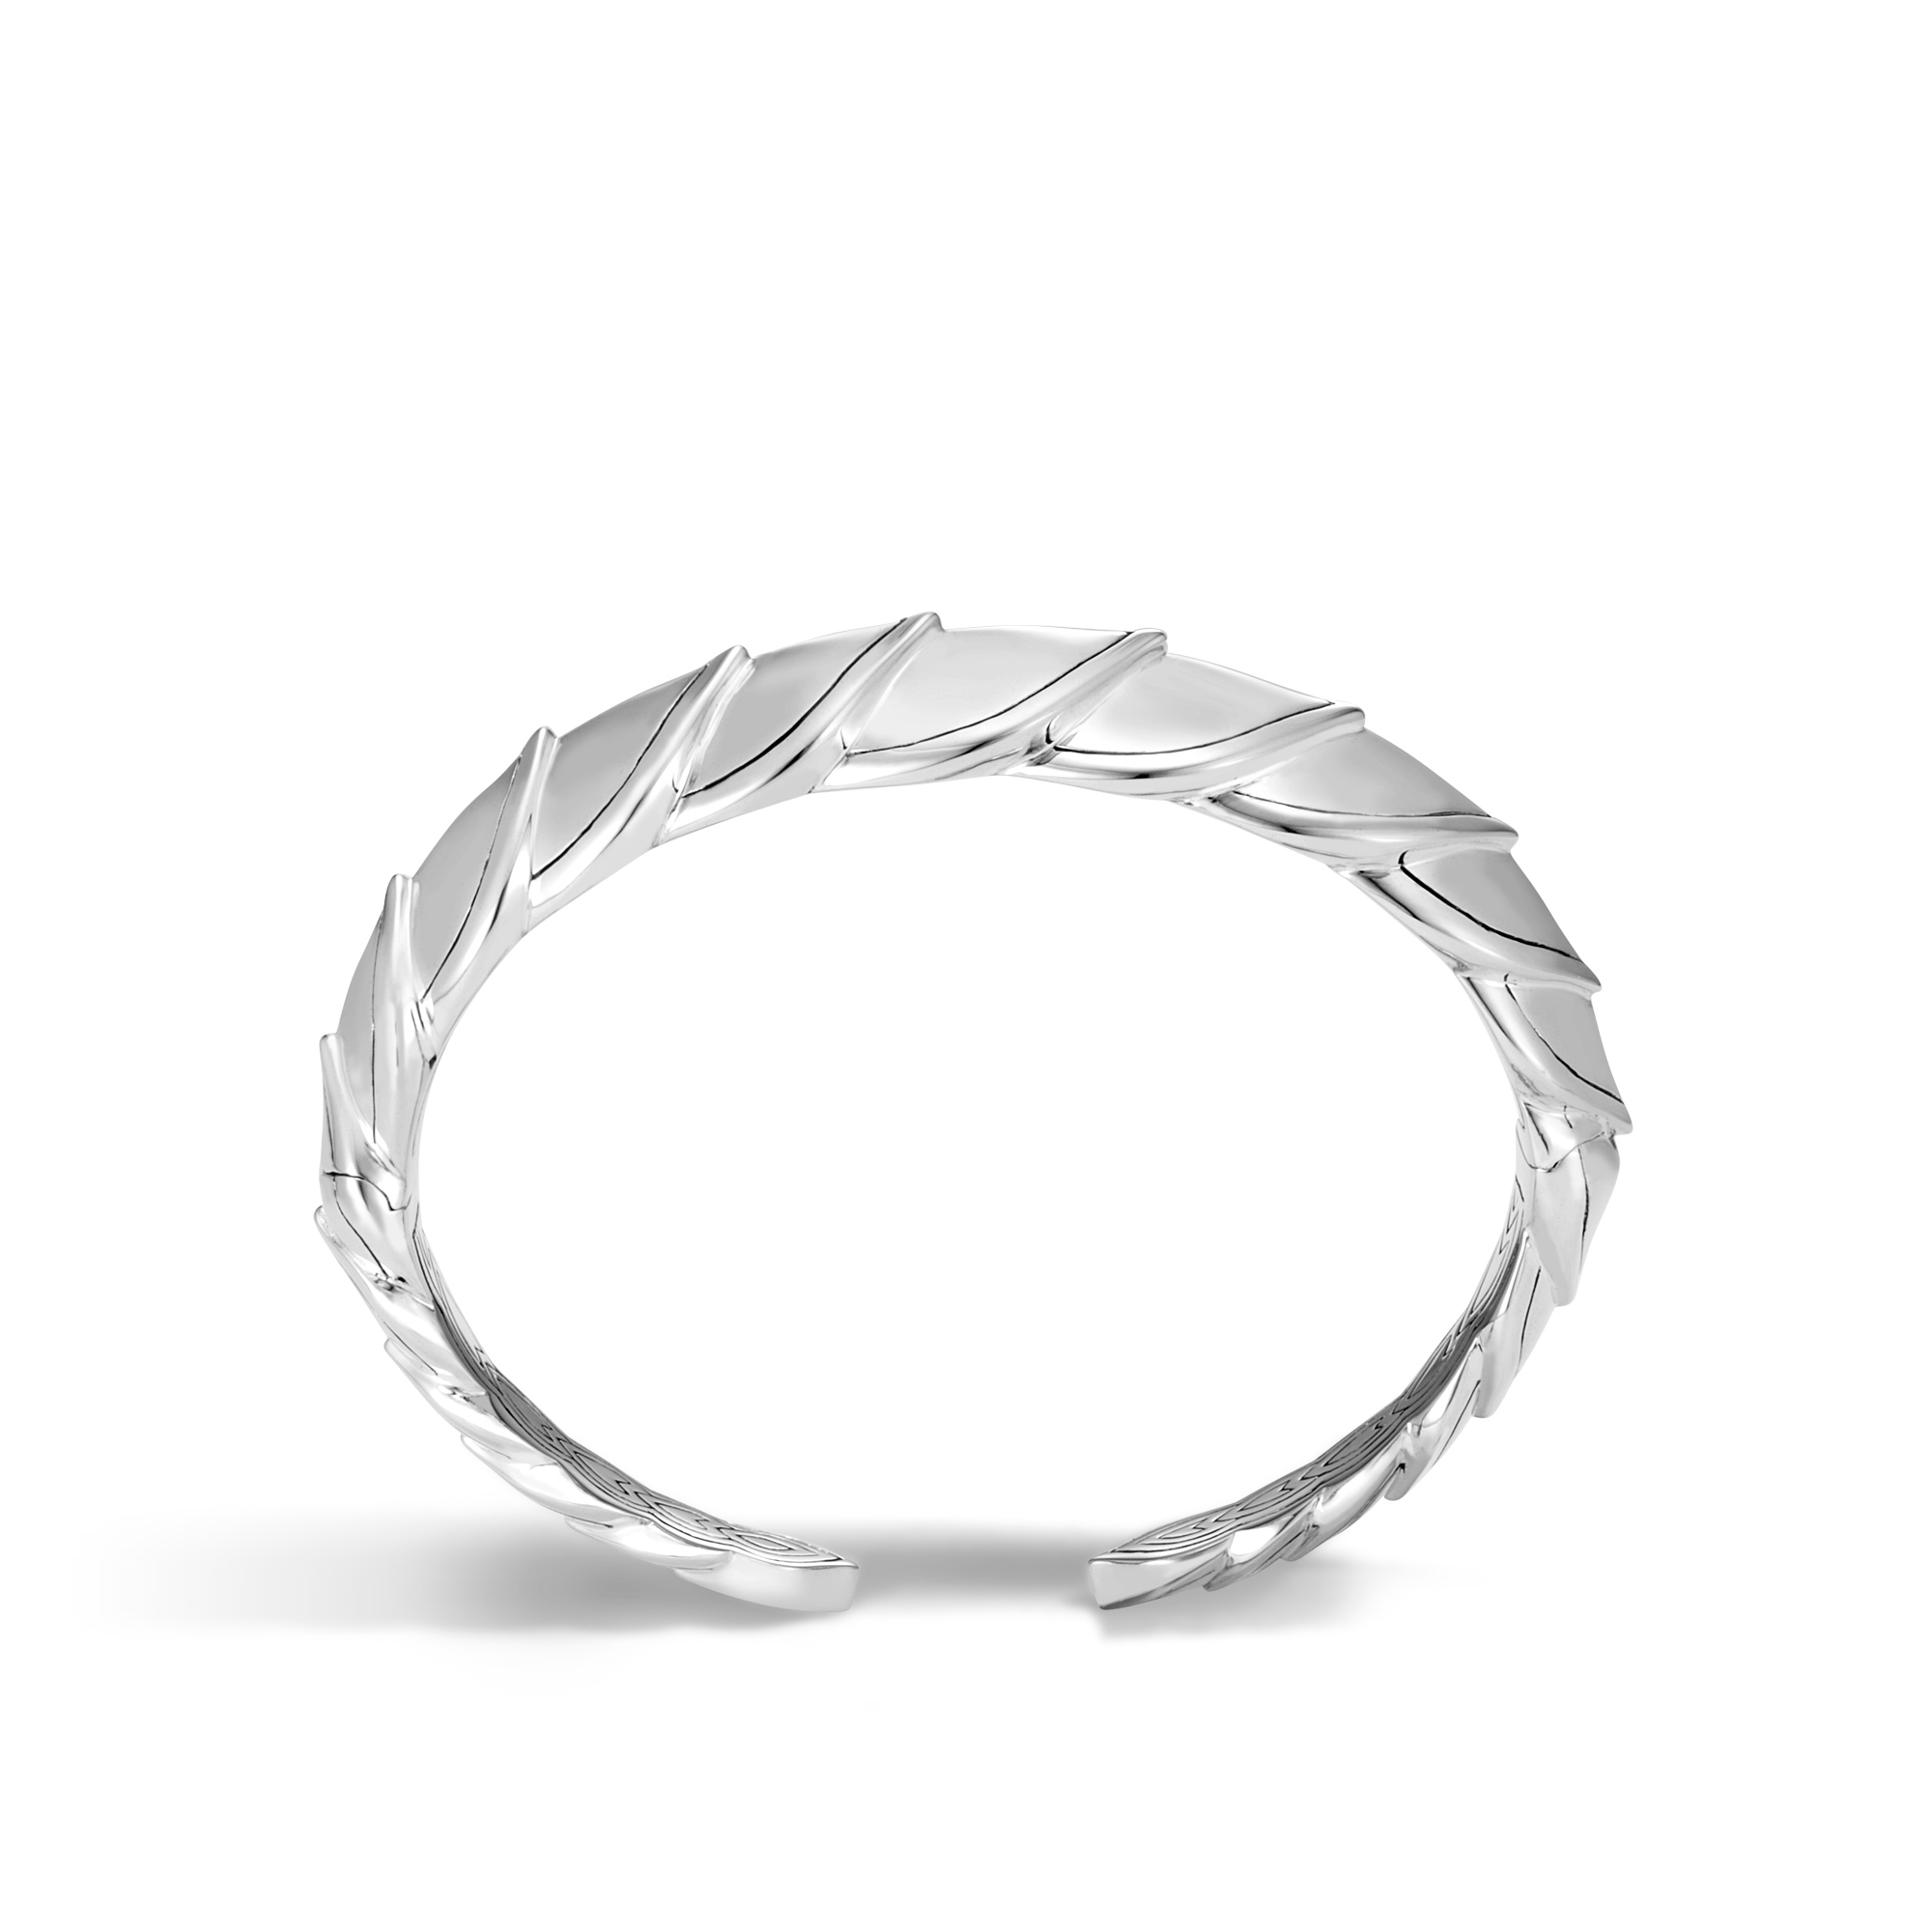 Legends Naga 17MM Cuff in Silver, , large